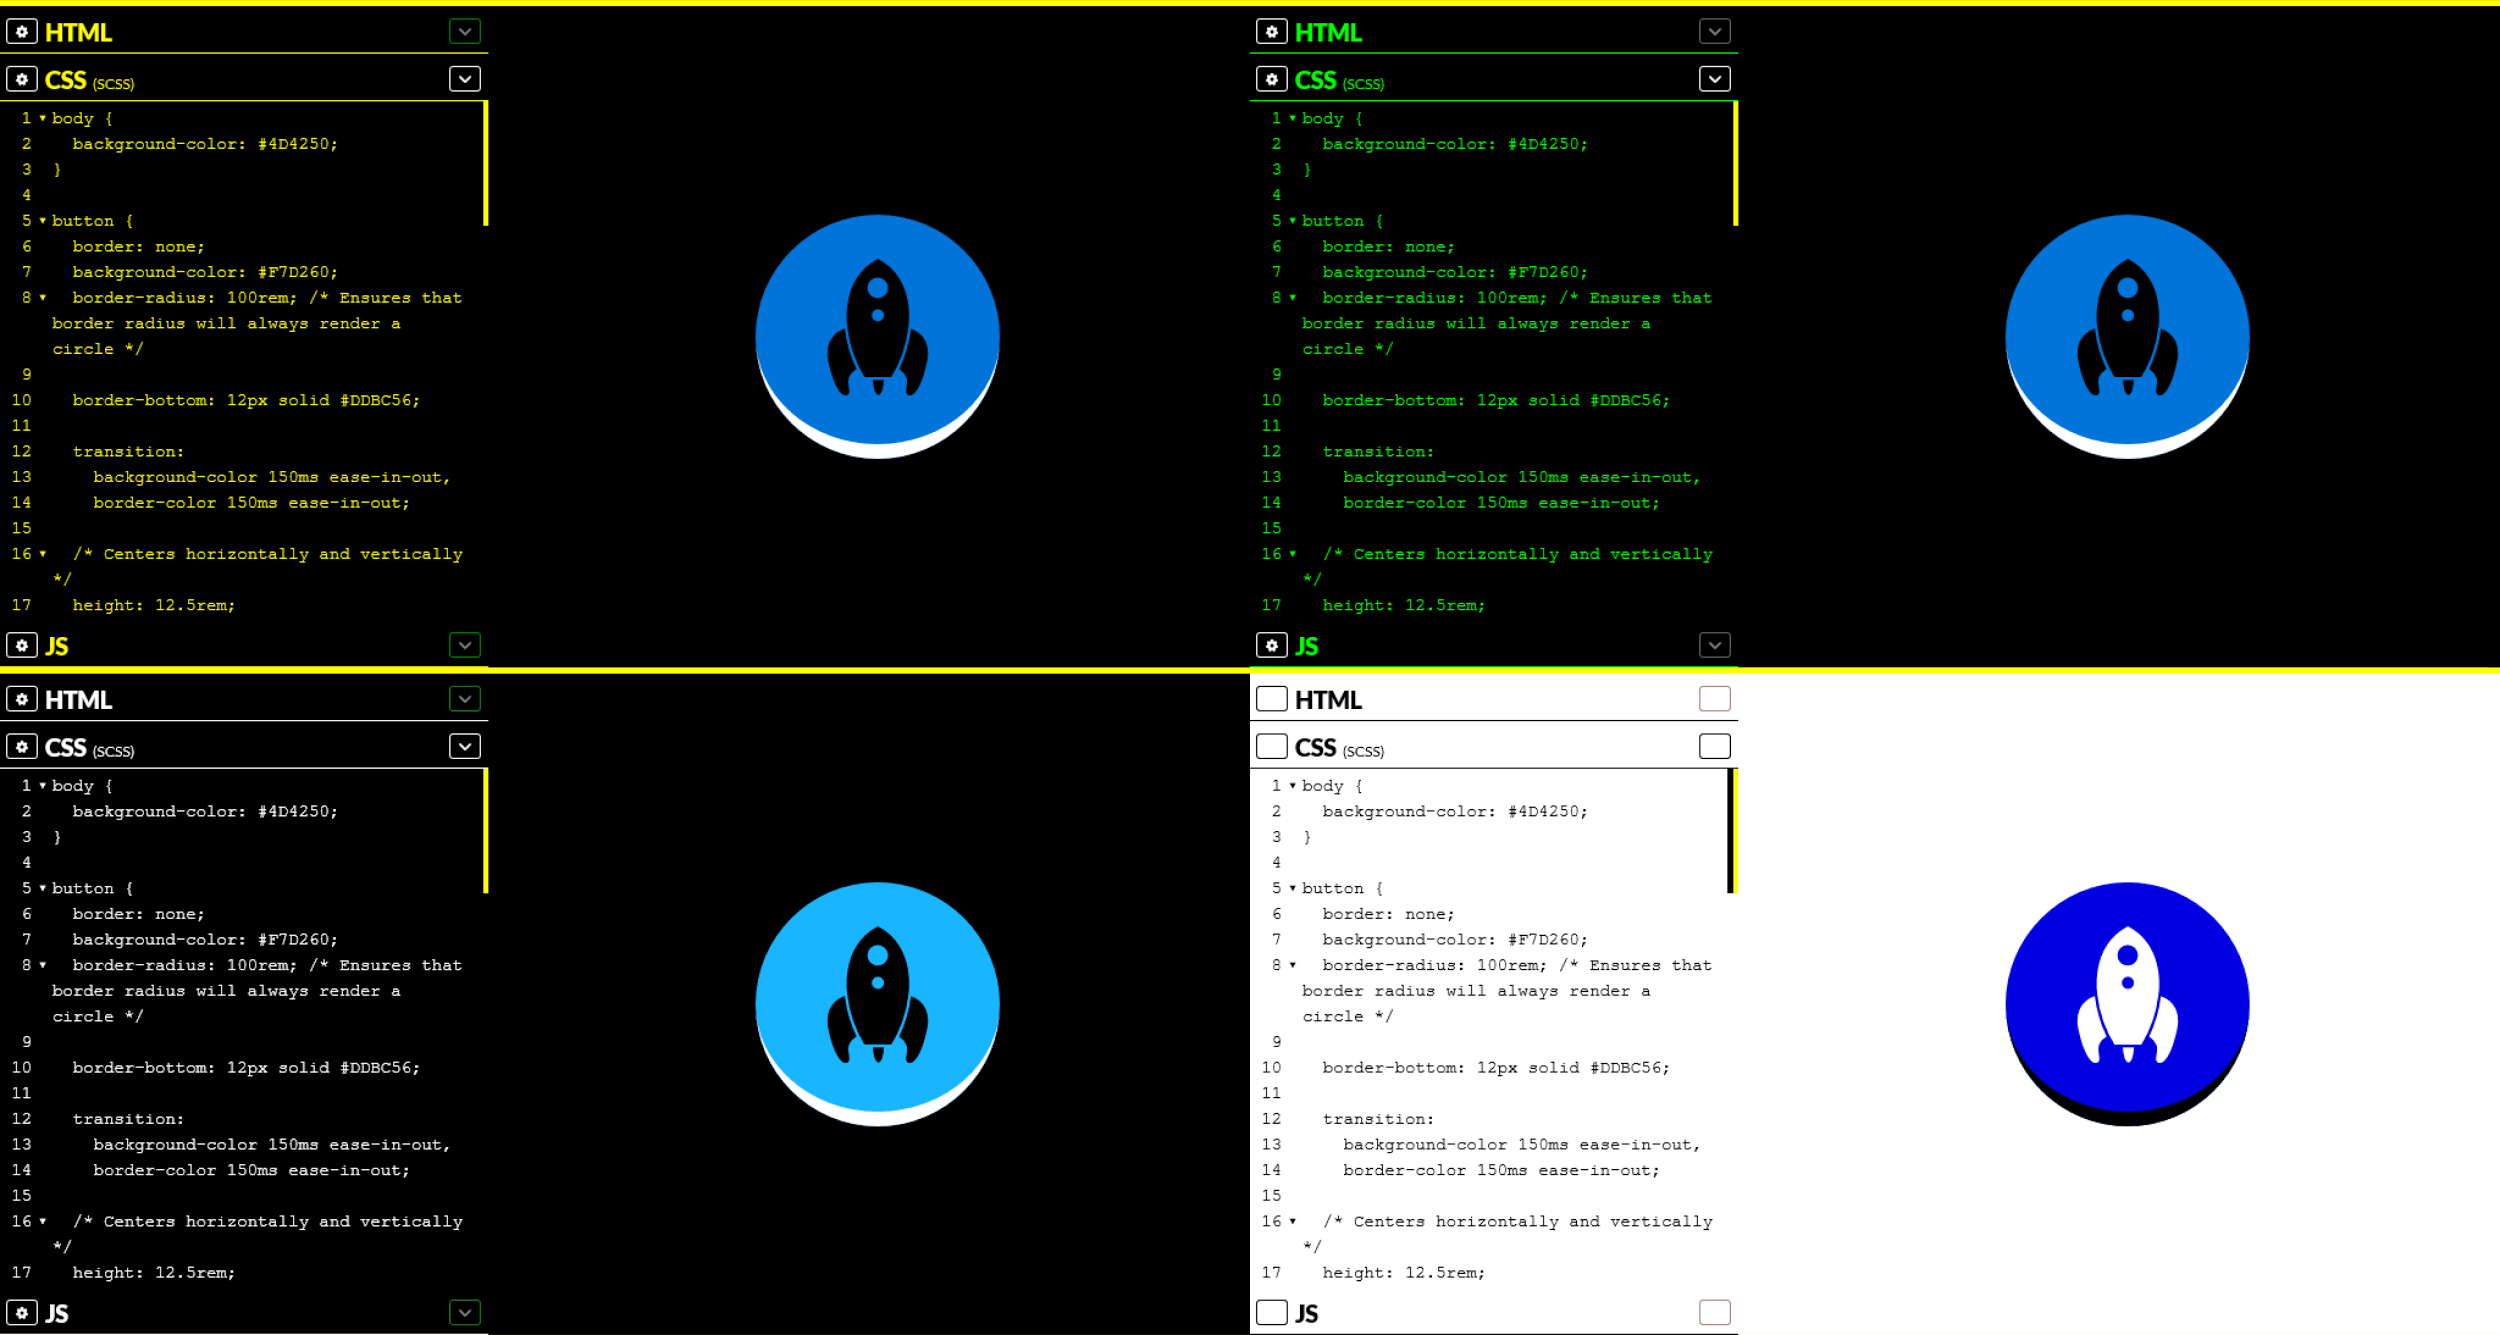 Example screenshots showing a high contrast icon in CodePen